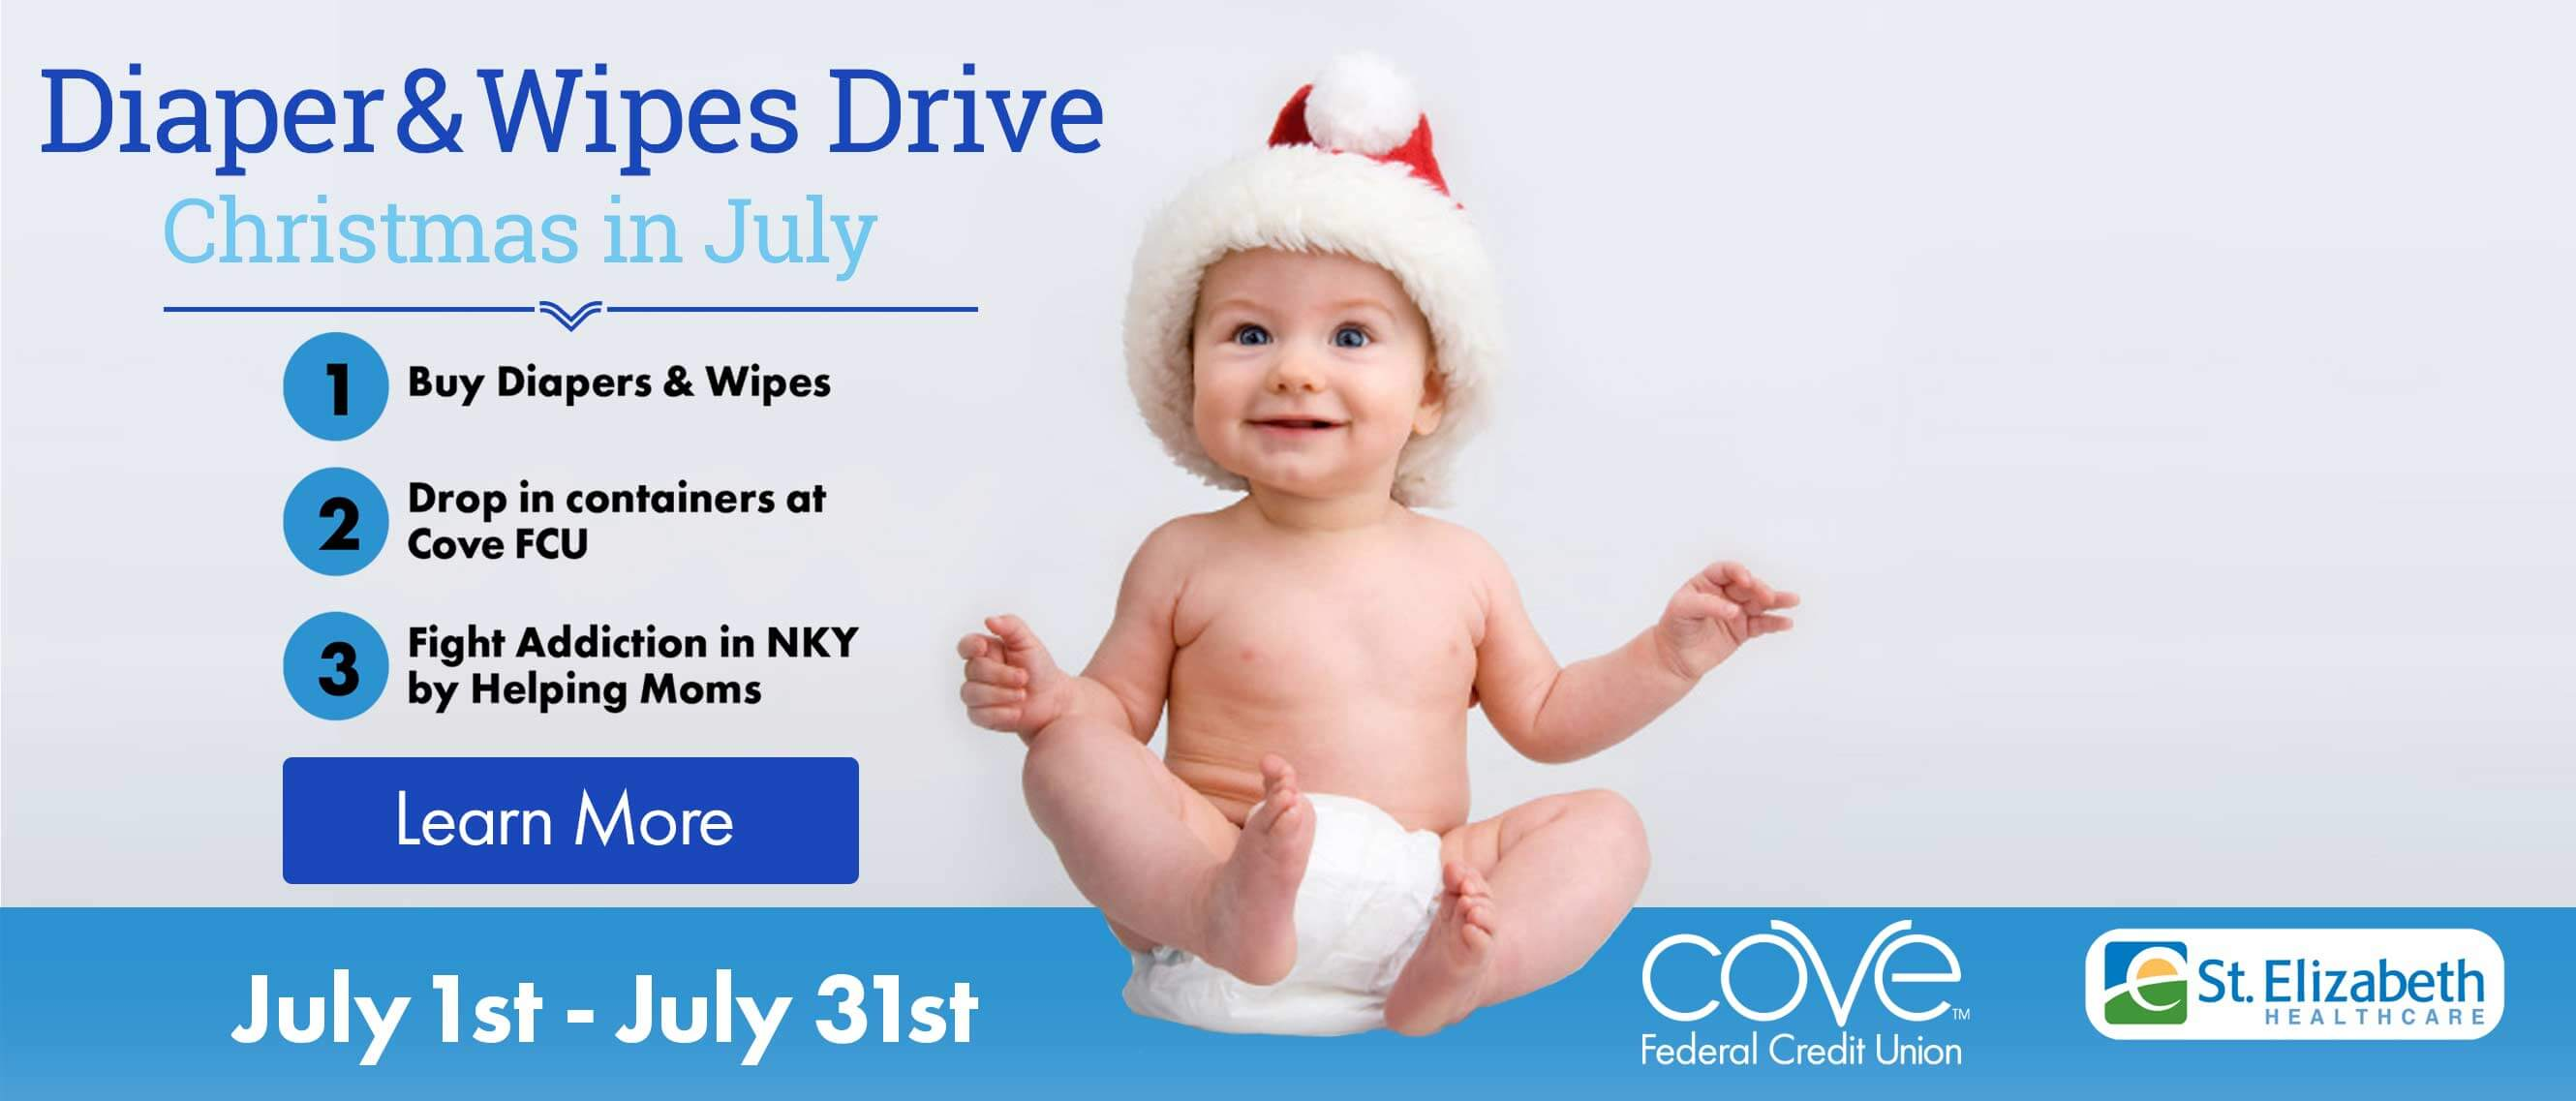 Diapers & Wipes Drive Christmas In July